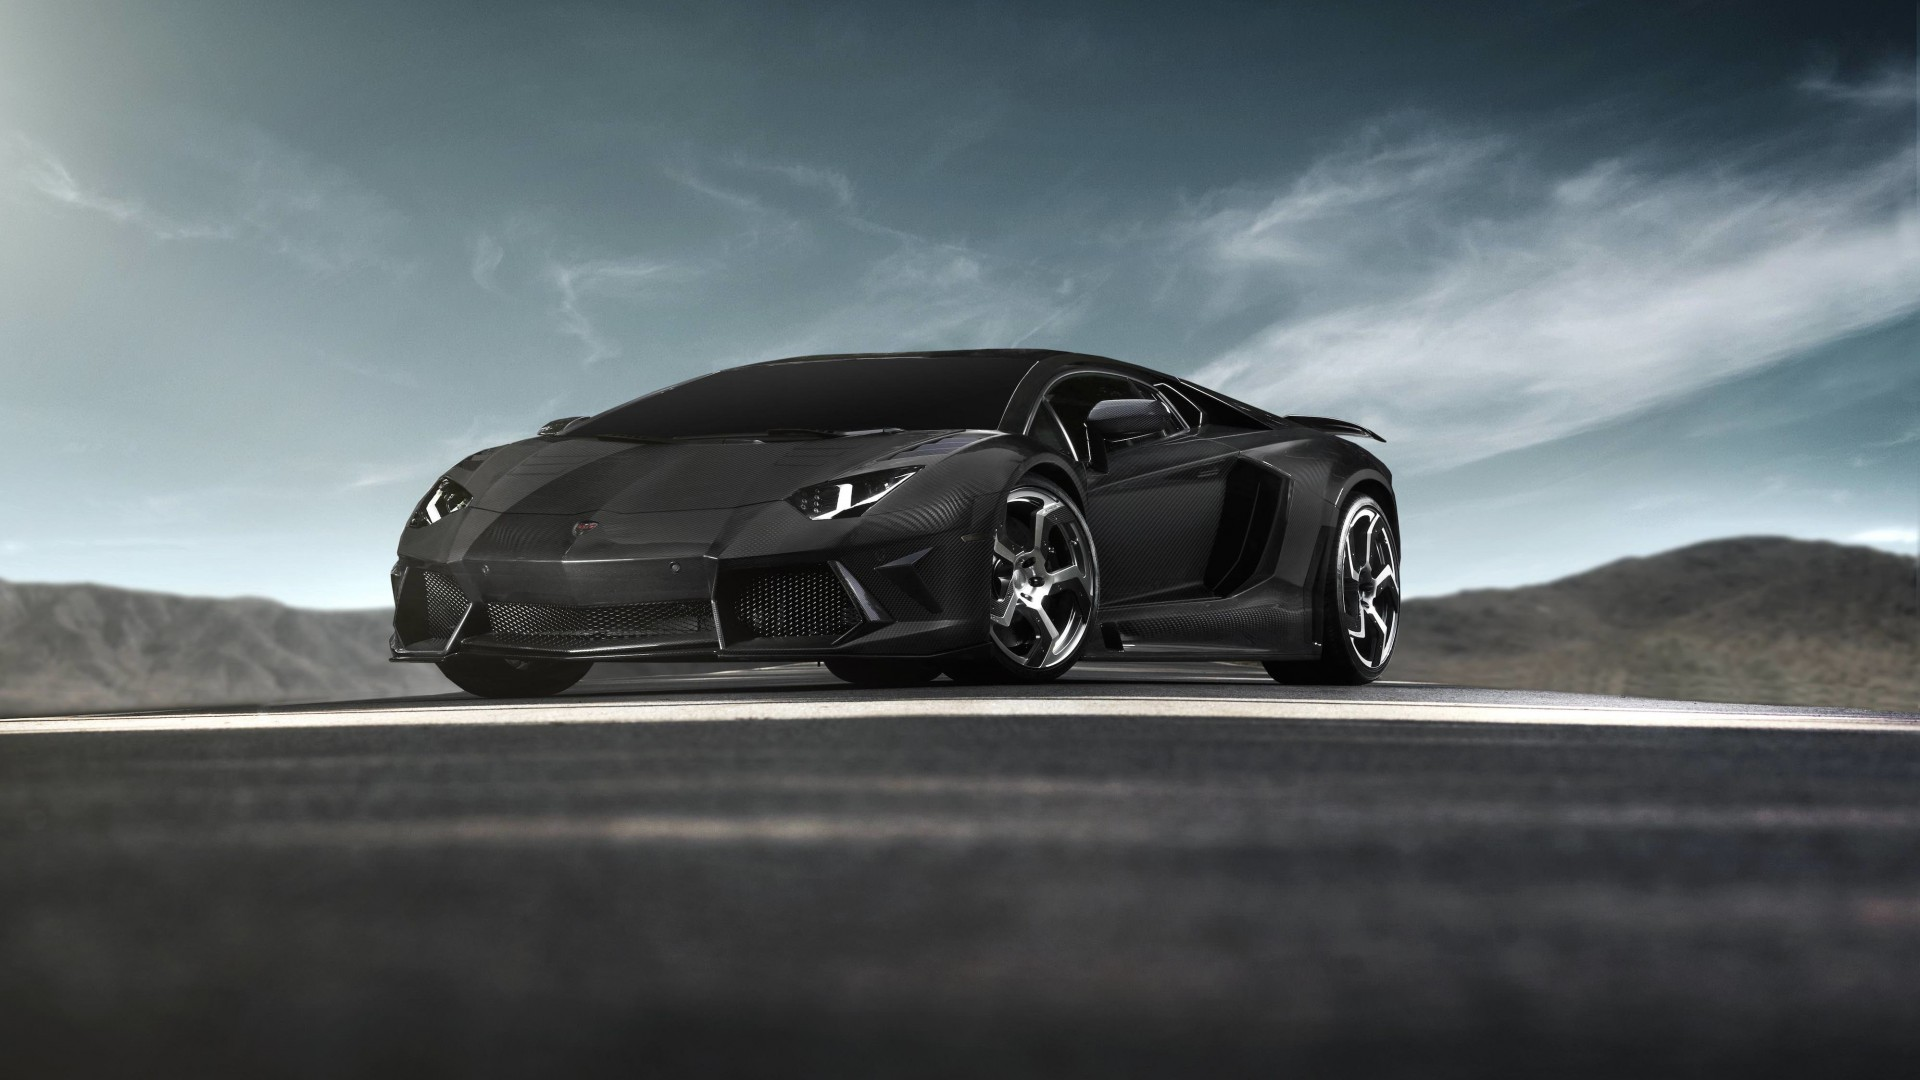 Mansory Carbonado Lamborghini Aventador LP700-4 Wallpaper for Desktop 1920x1080